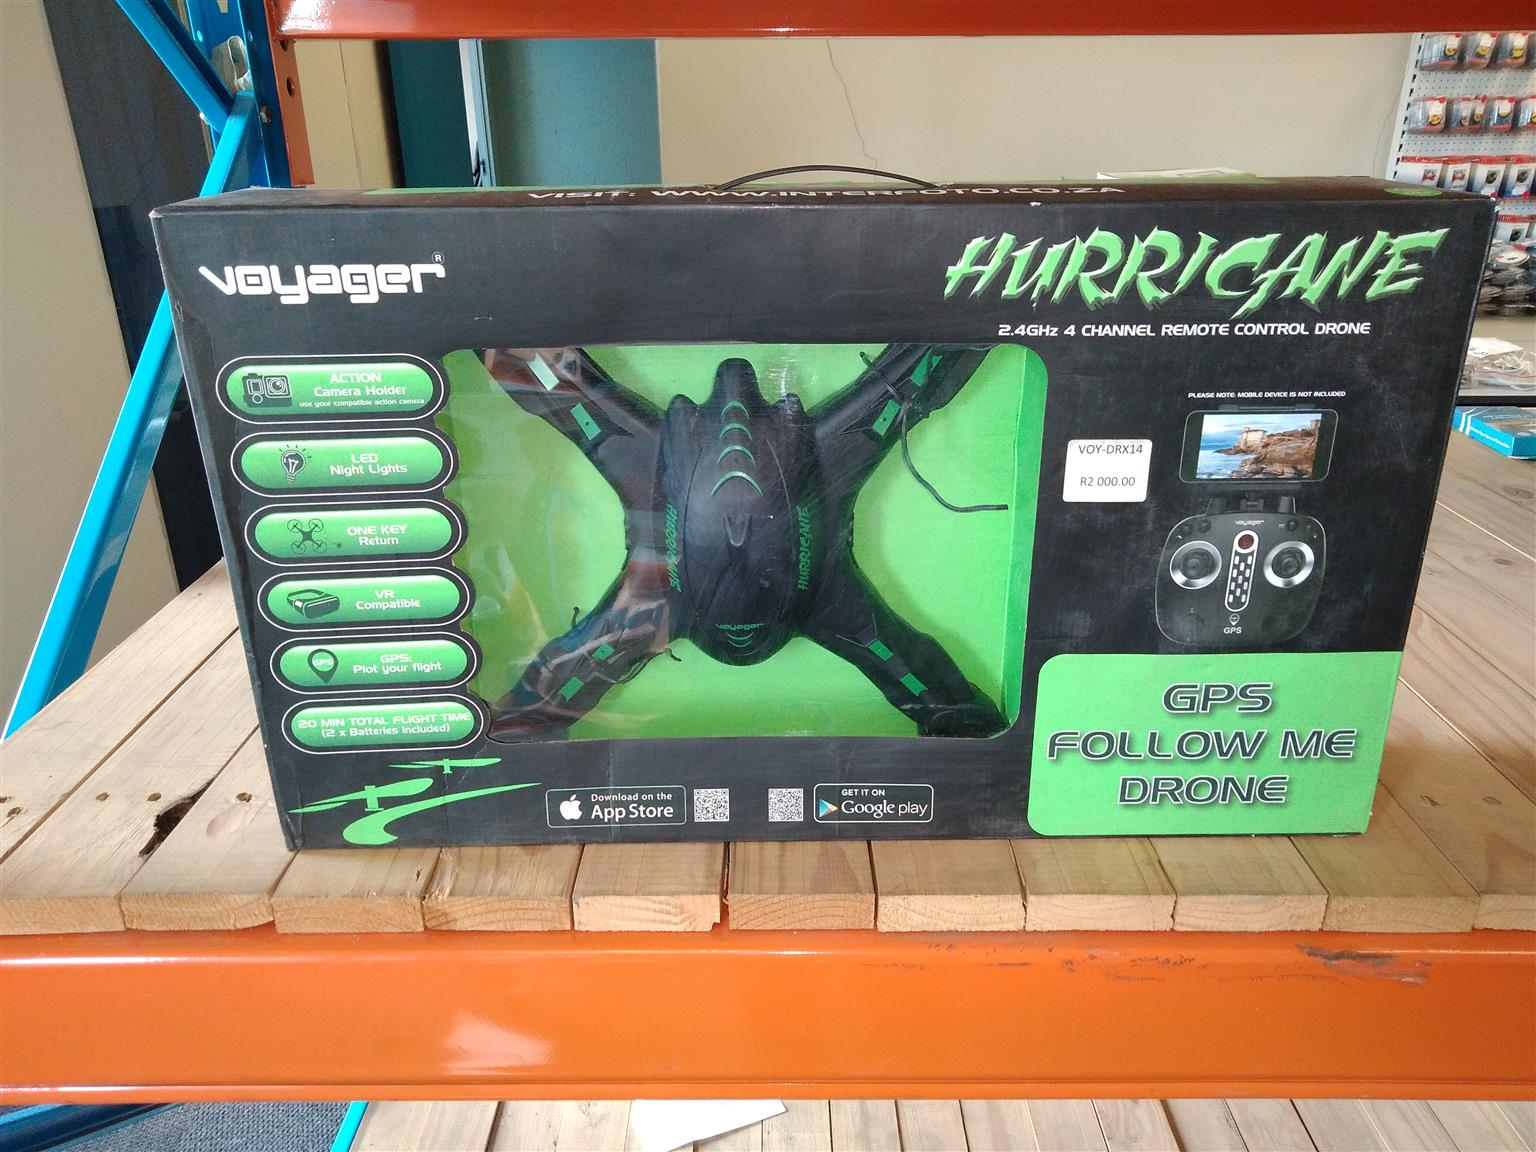 Voyager Hurricane ×14 Drone